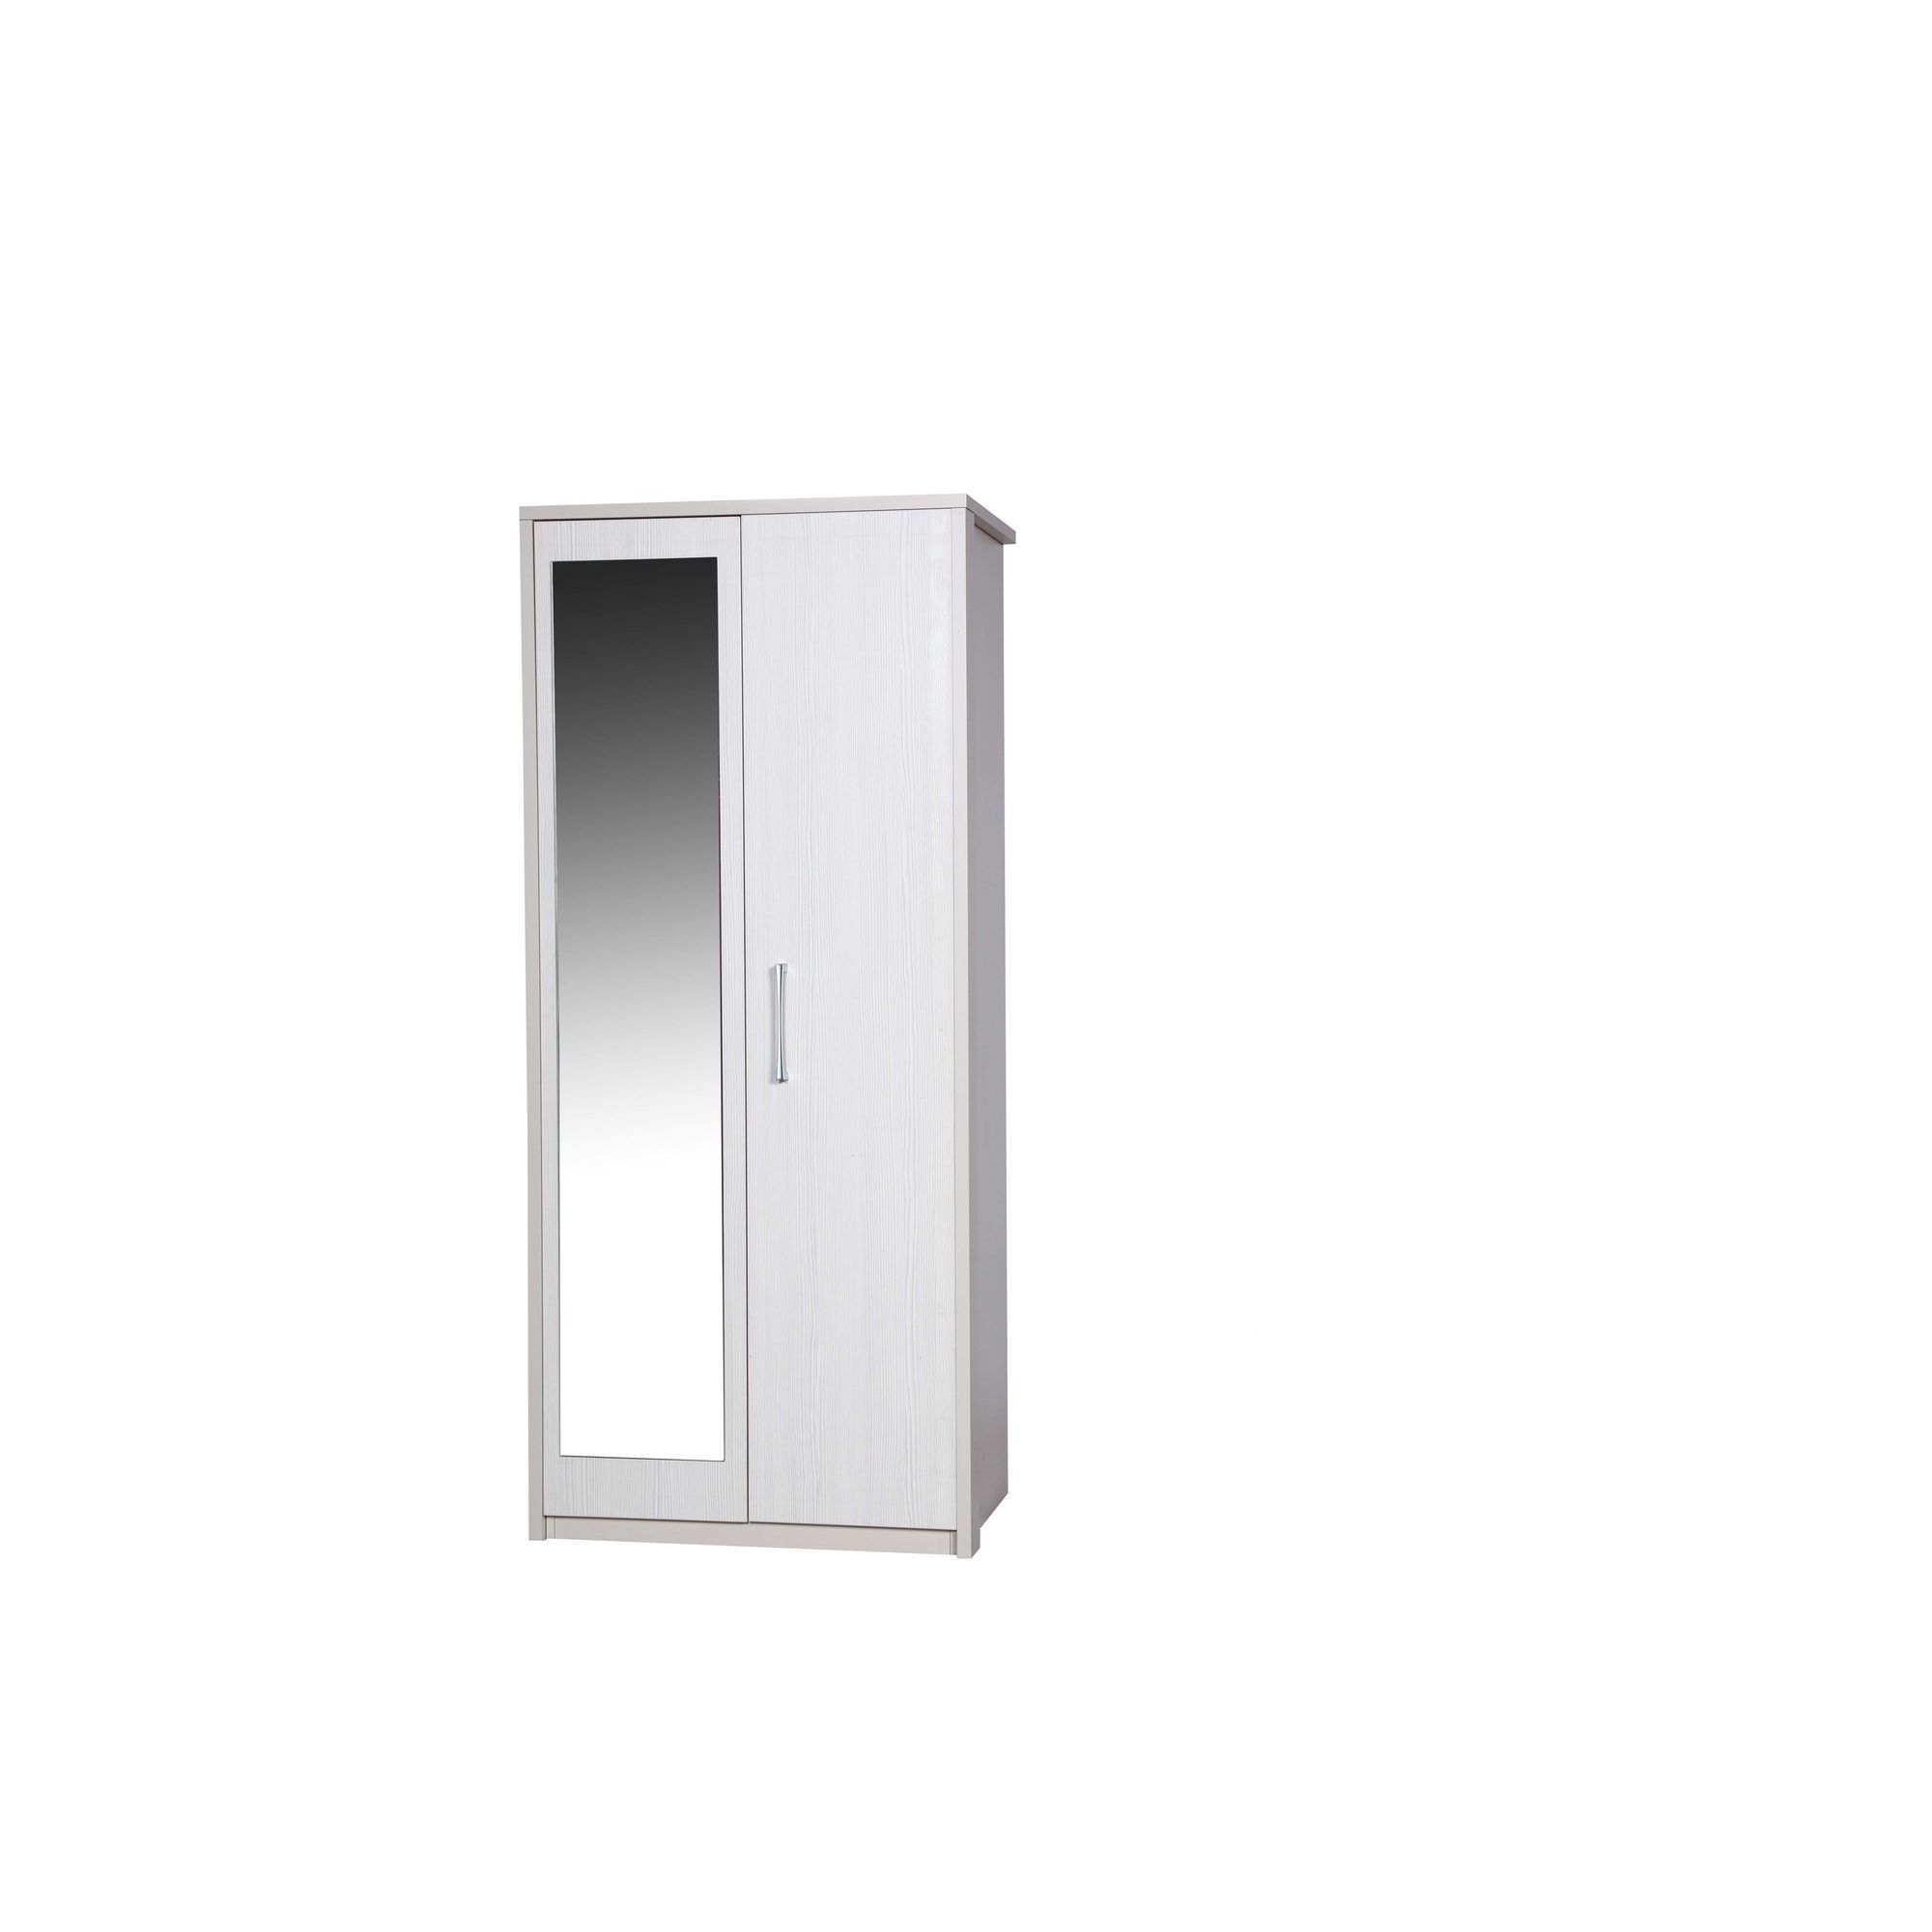 Alto Furniture Avola Double Wardrobe with Mirror - Cream Carcass With White Avola at Tescos Direct